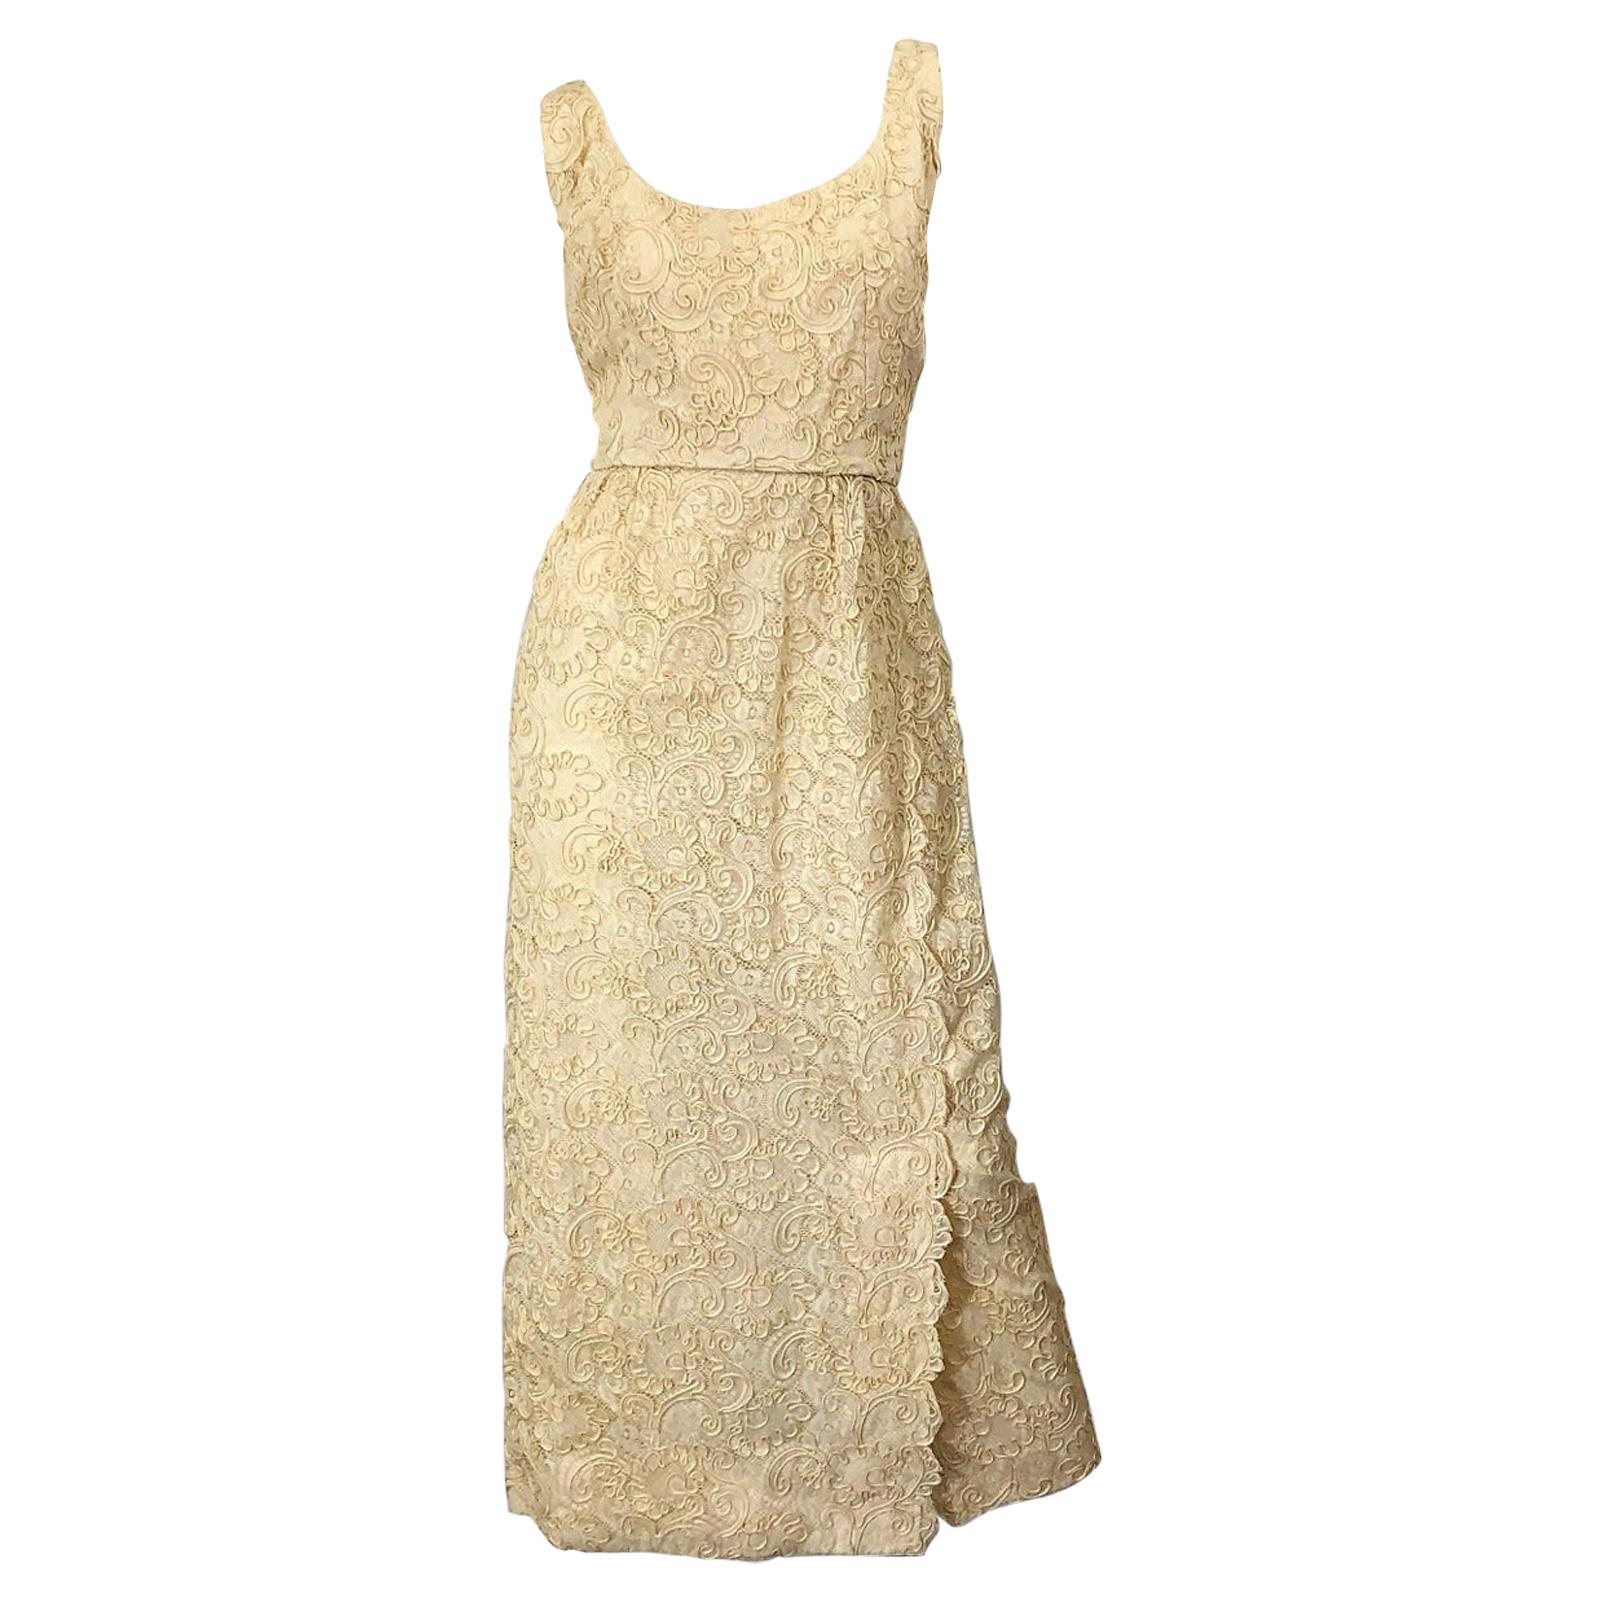 1960s Malcolm Starr Pale Yellow Silk Lace Embroidered Vintage 60s Gown Dress